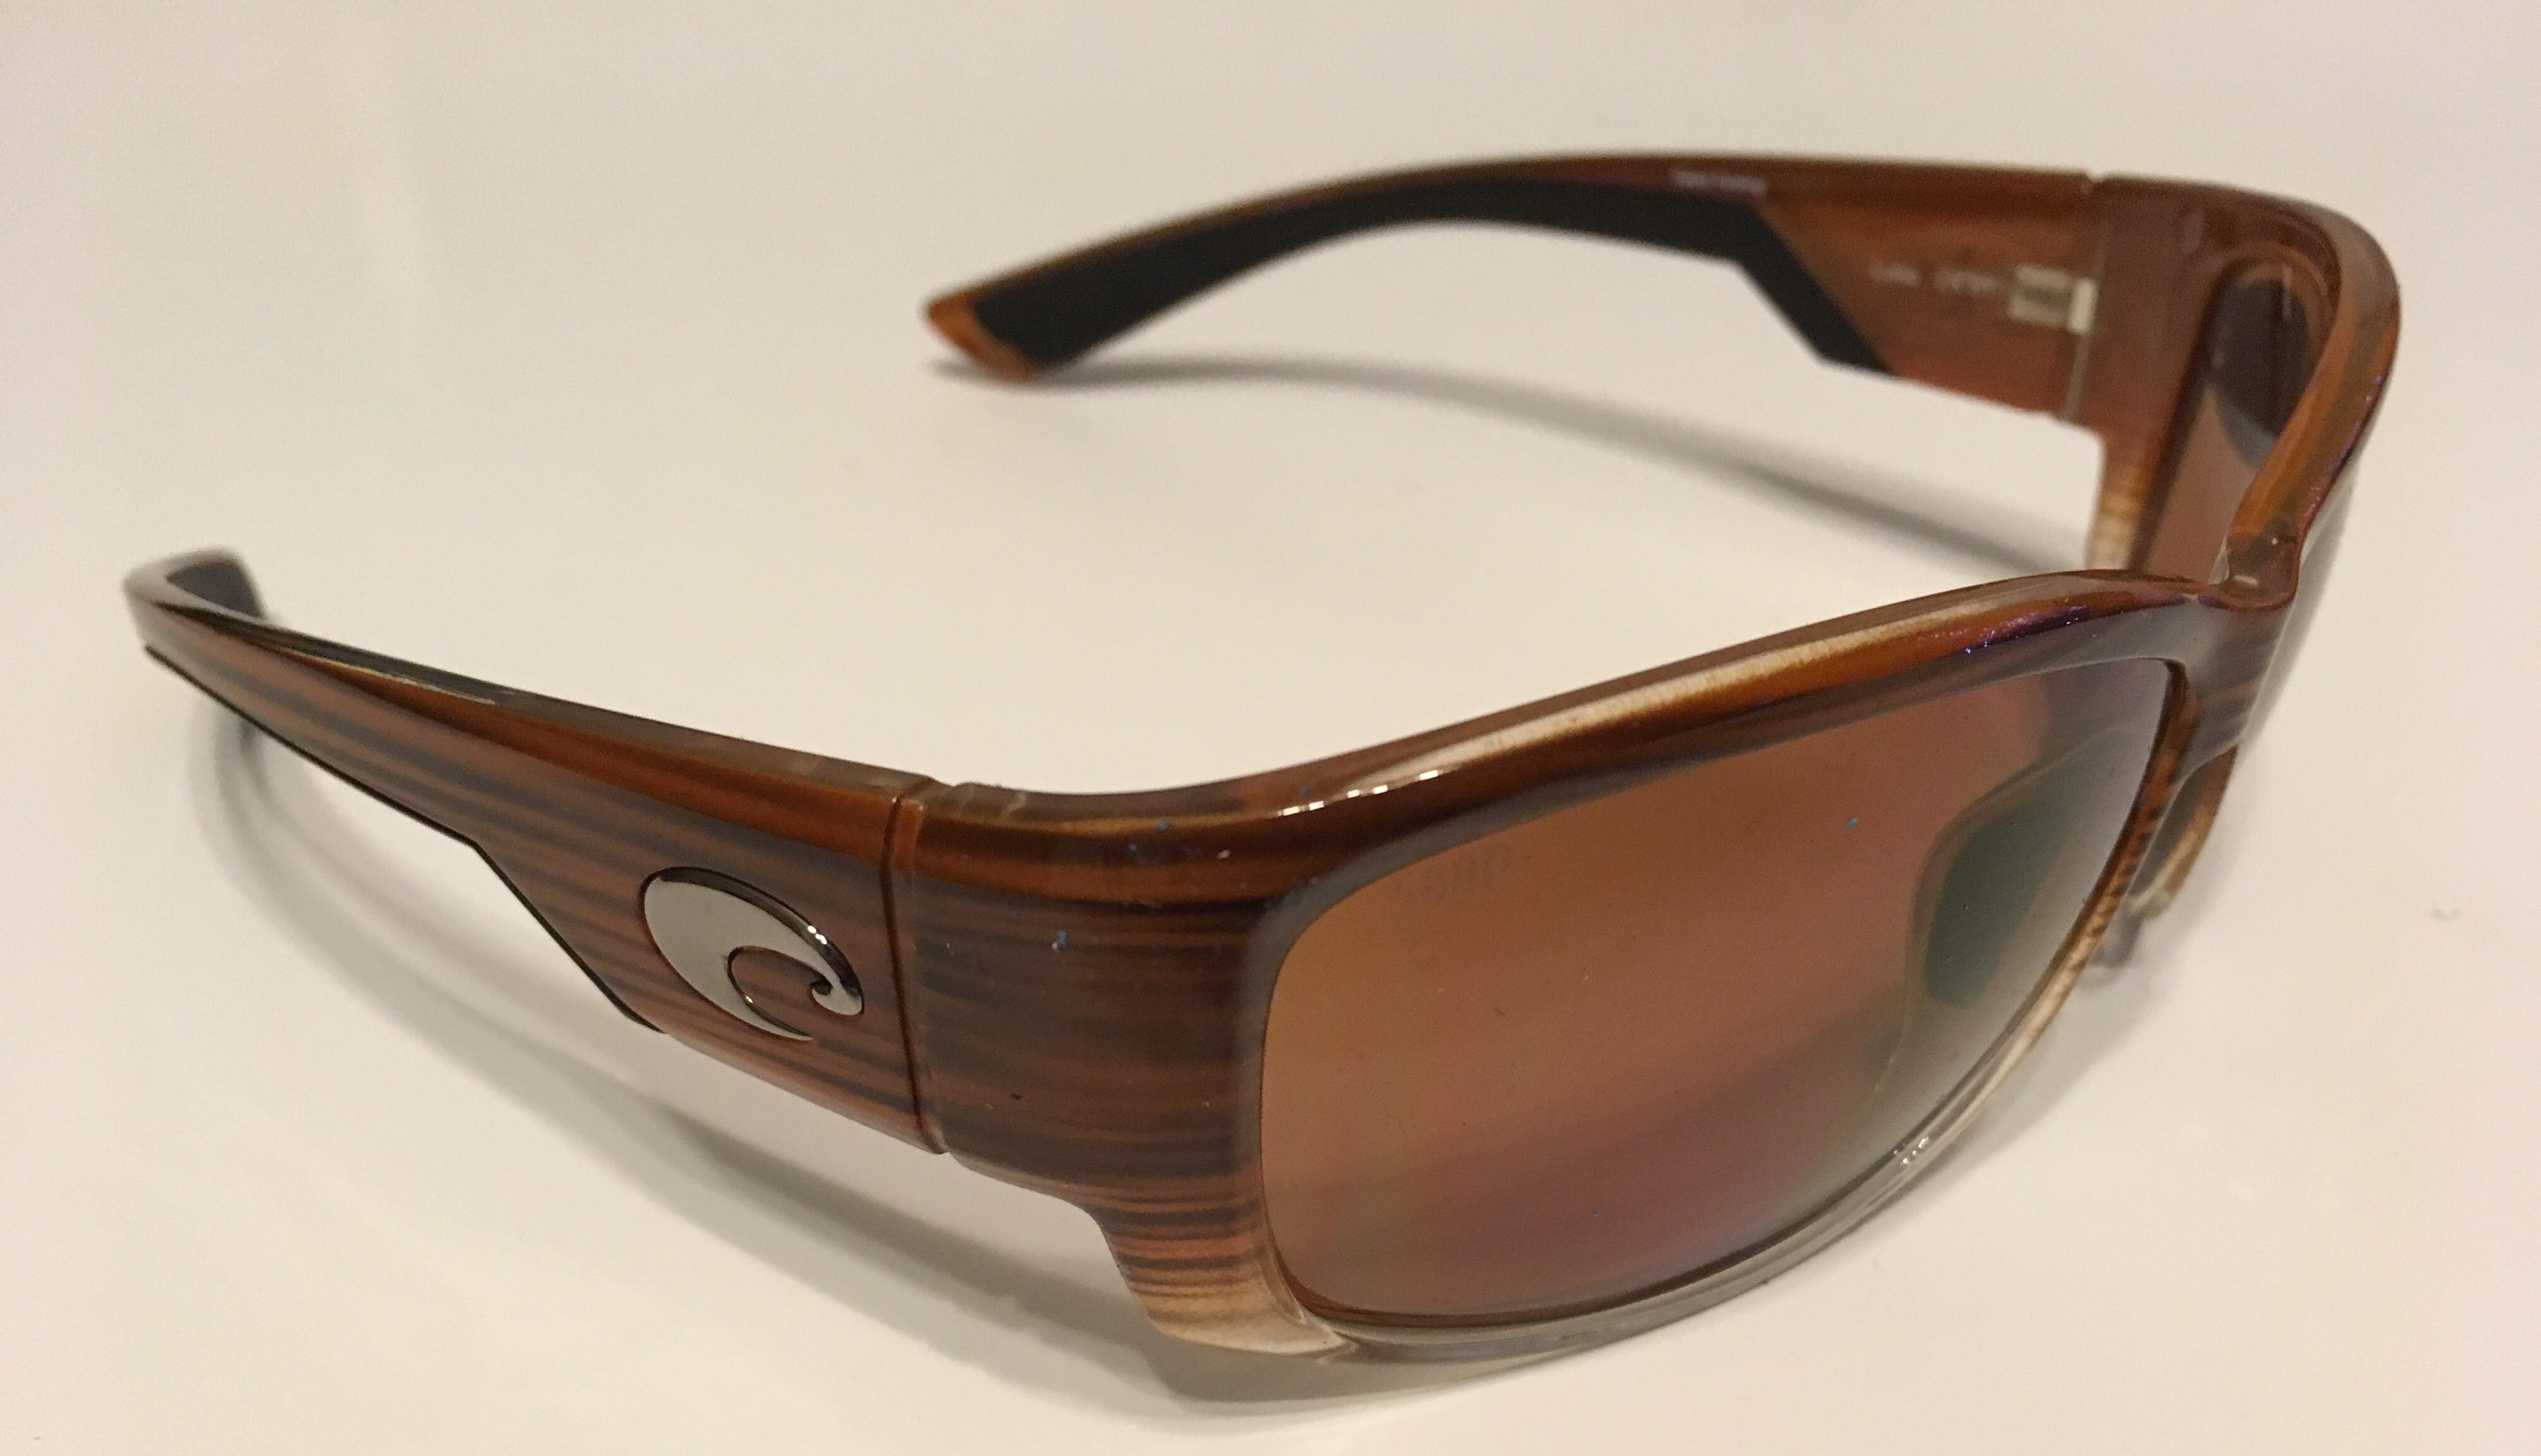 b4d394a59ccc Costa Del Mar Luke Sunglasses - Wood Fade Frame - Polarized Copper ...